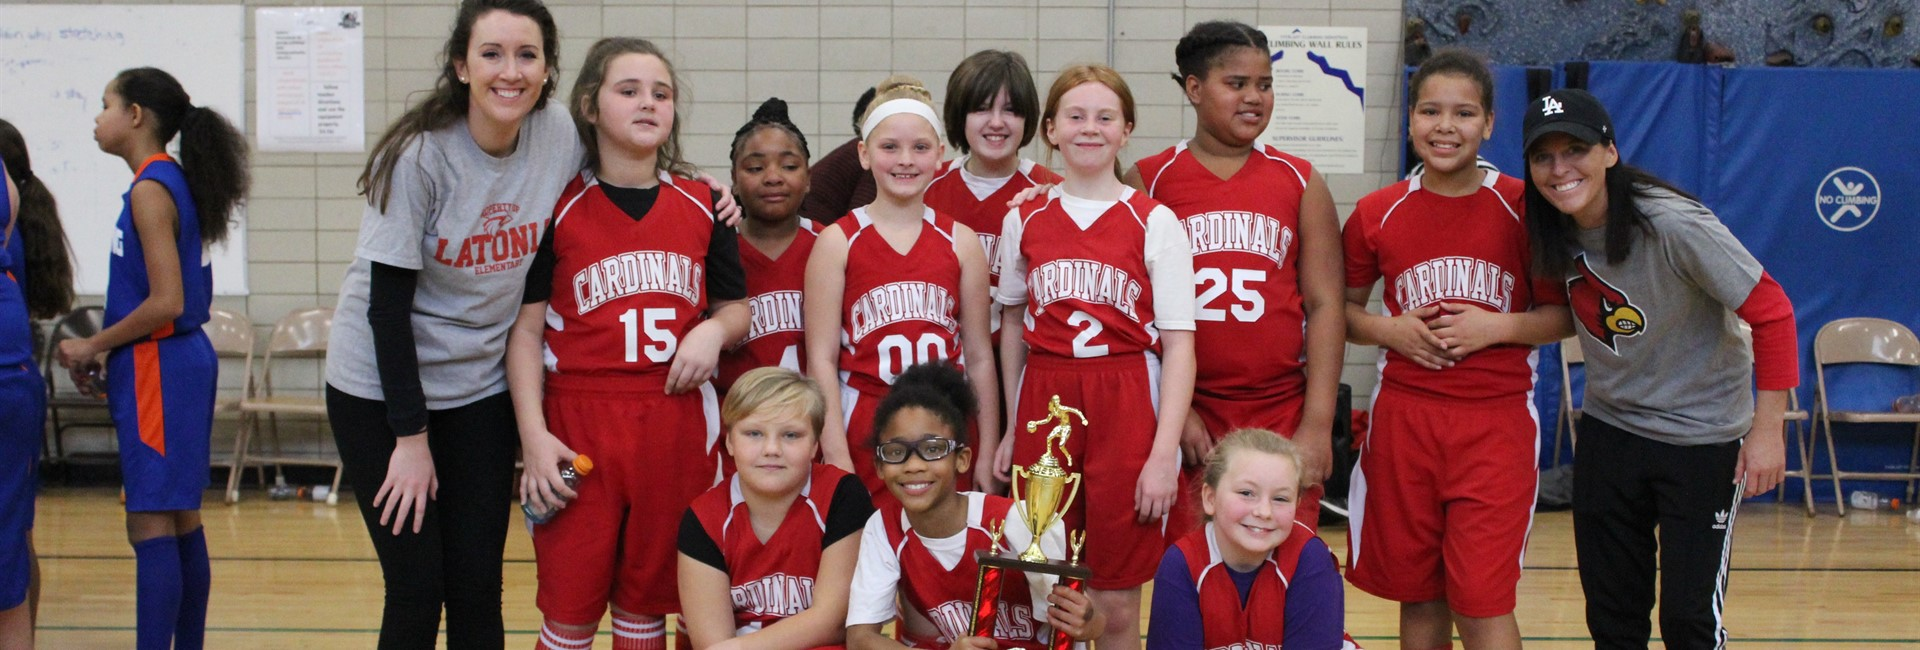 Latonia Elementary girls basketball team wins 1st place.